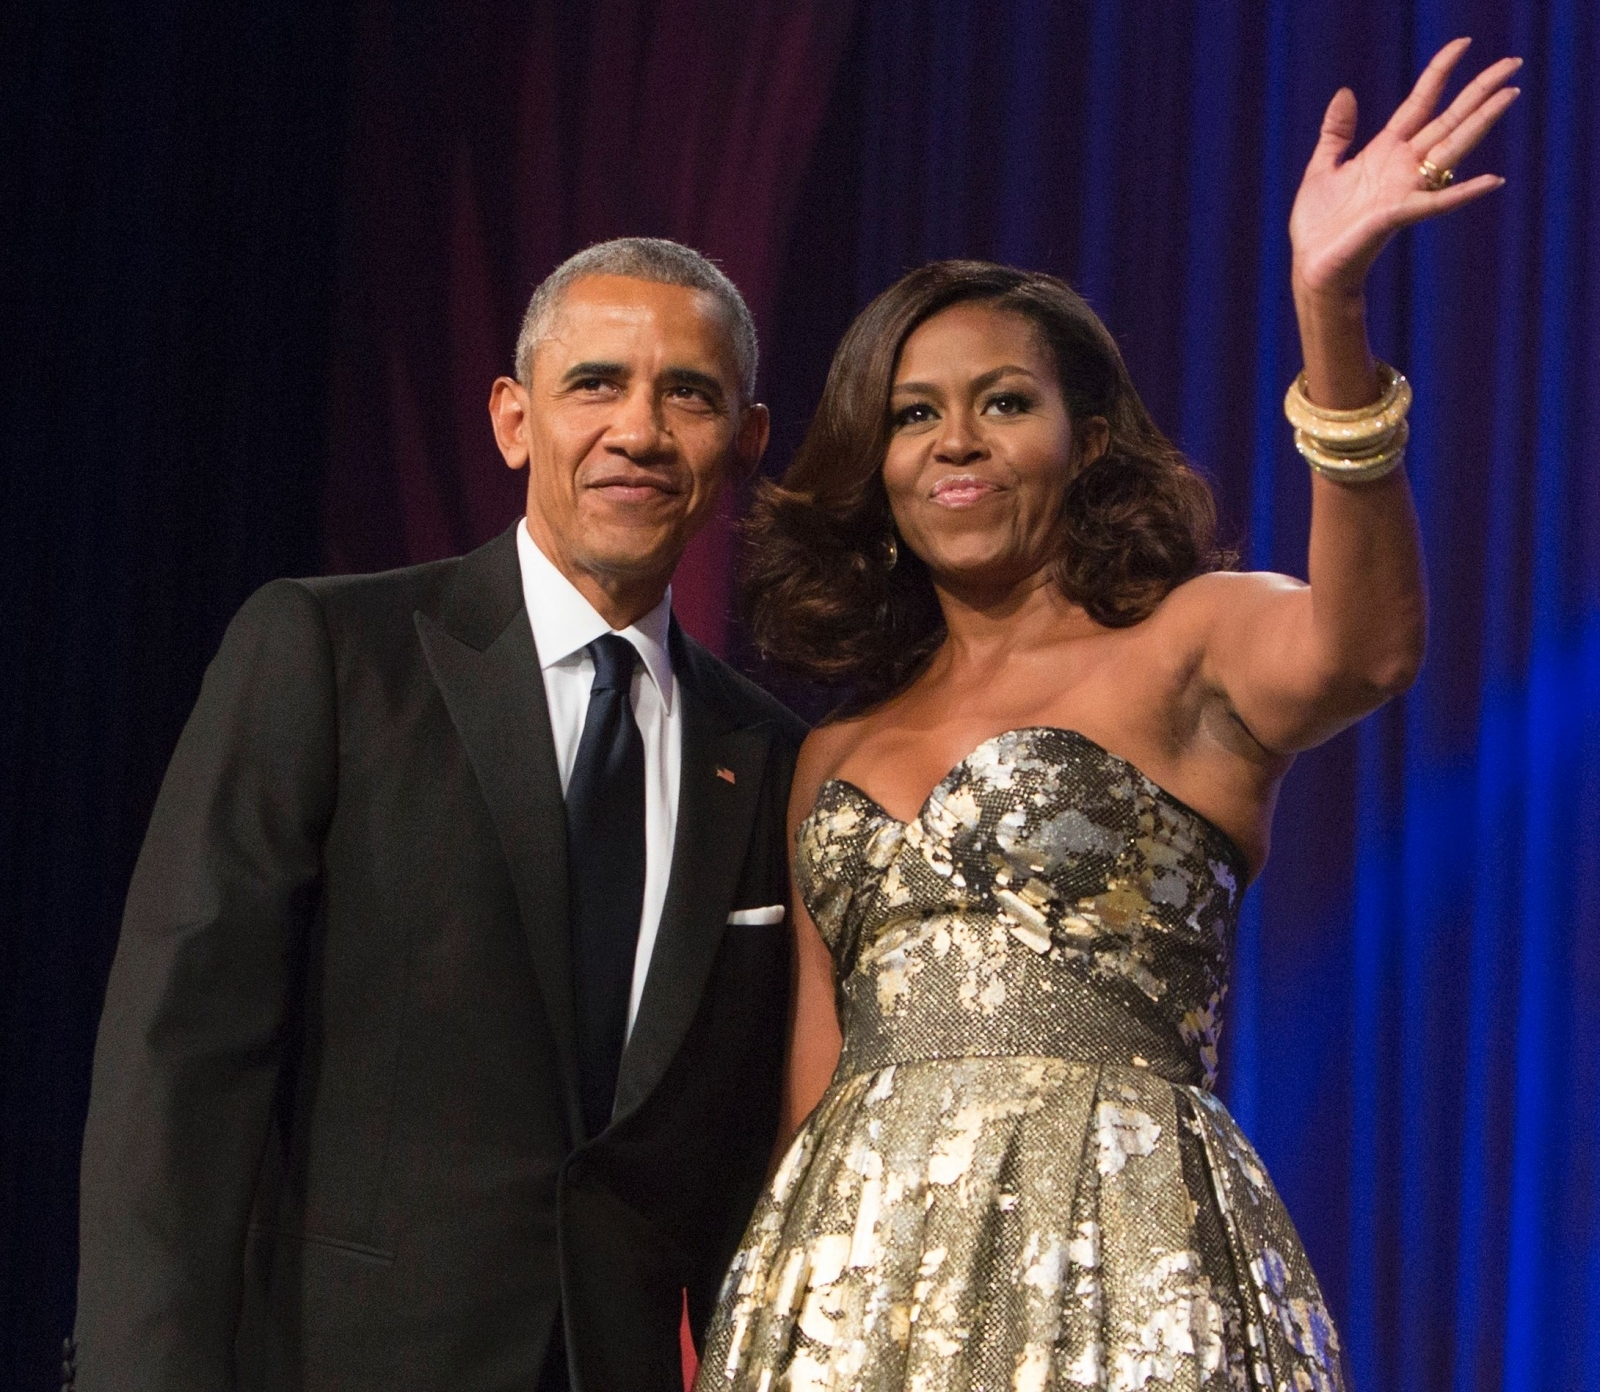 Barack & Michelle Obama Send Each Other Sweet Valentine's Day Messages